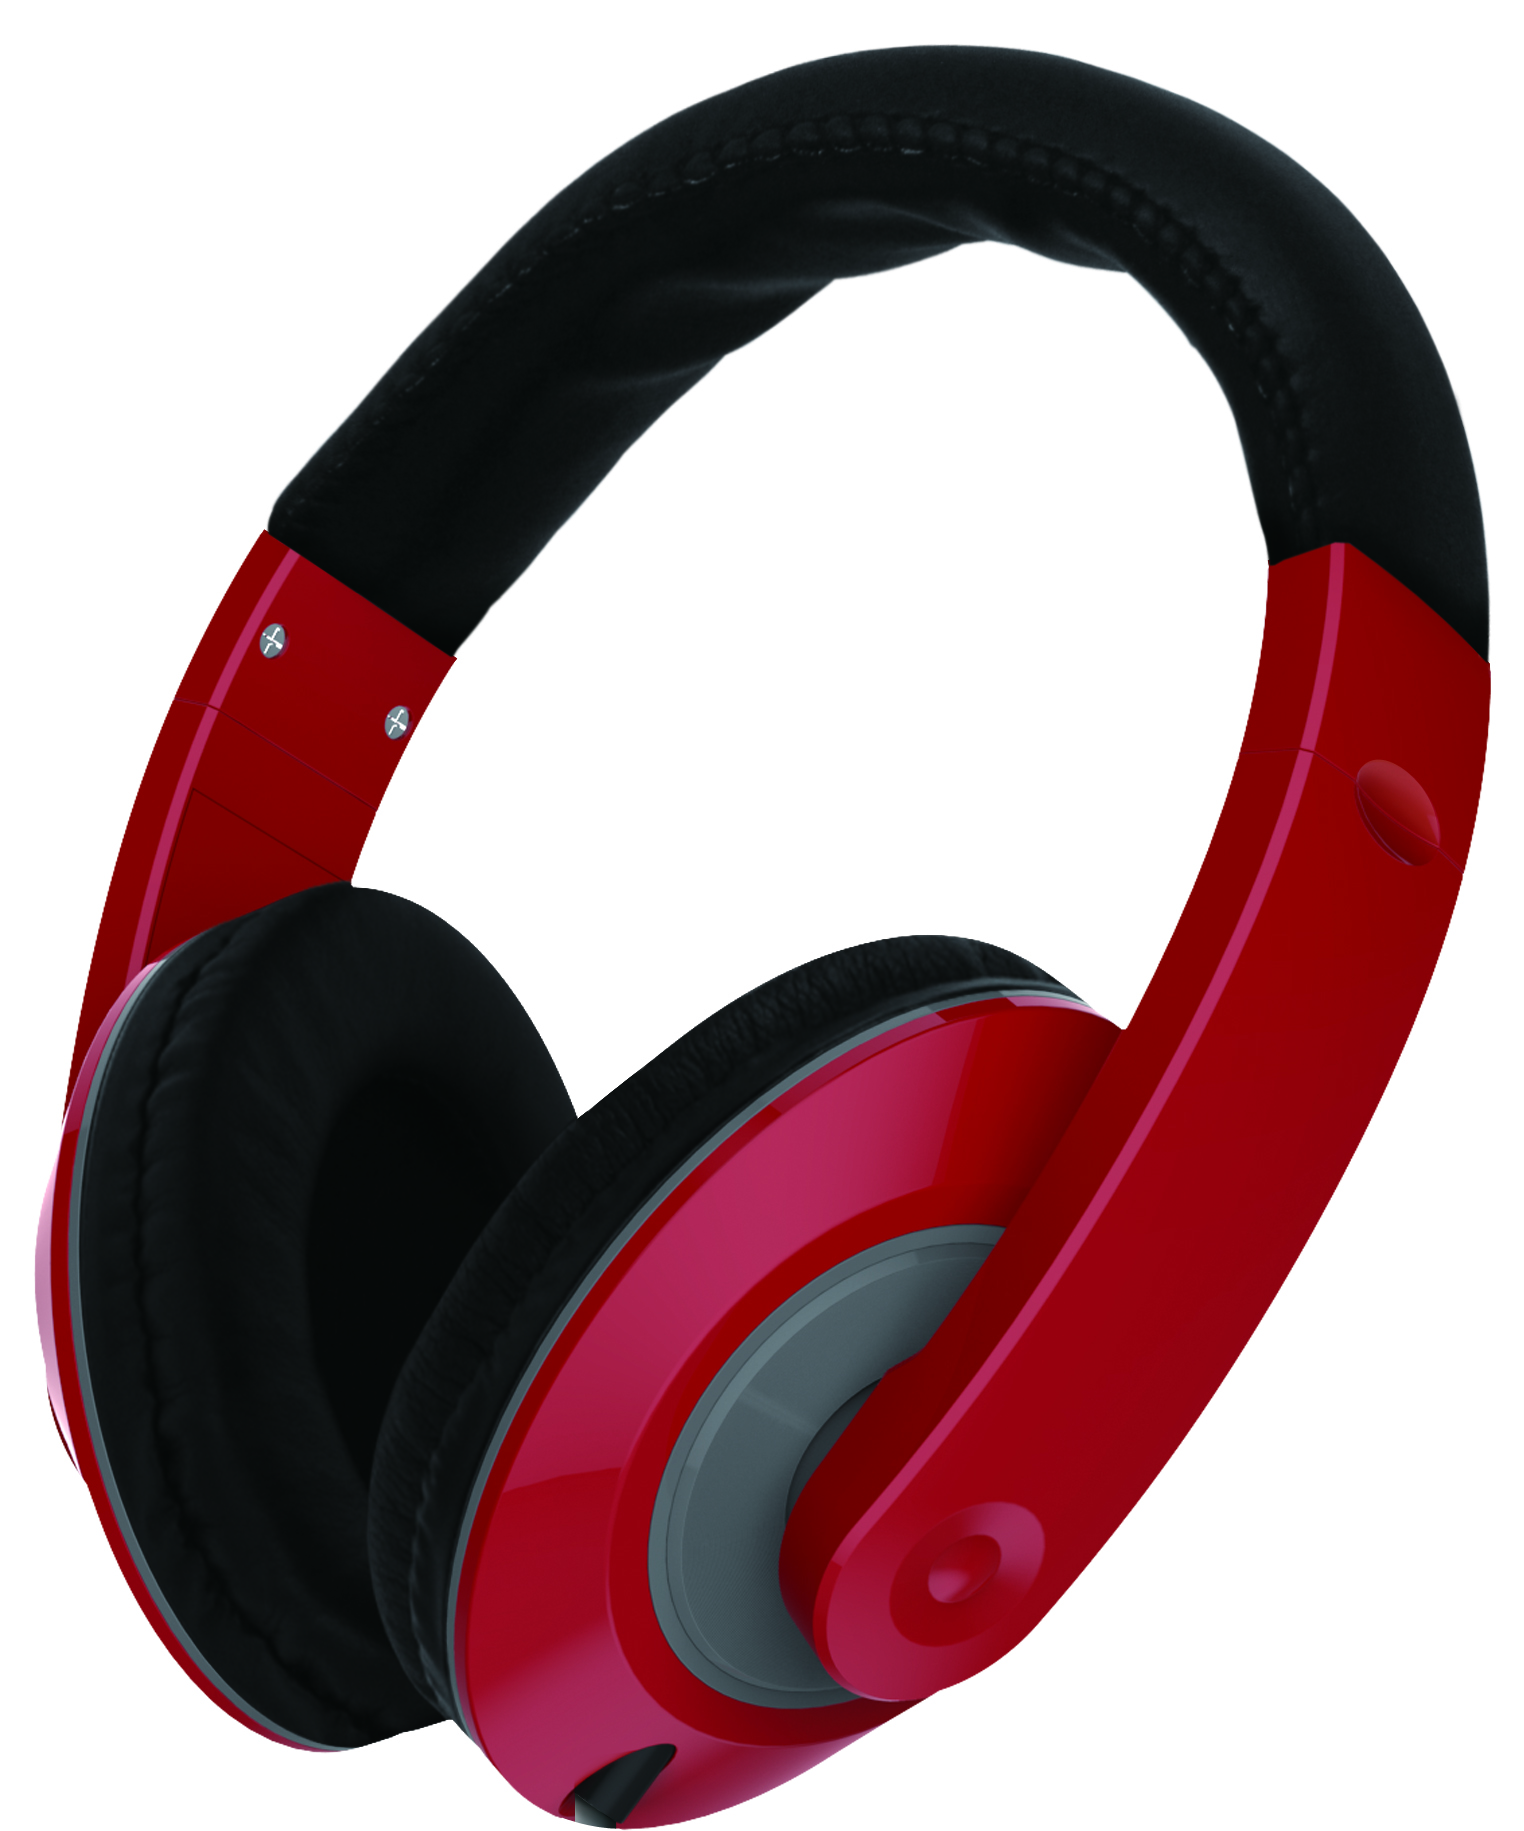 Vibe_DJ_Color_Curve_Stereo_On_Ear_Padded_High_Definition_Headphones_W_3_5mm_Jack